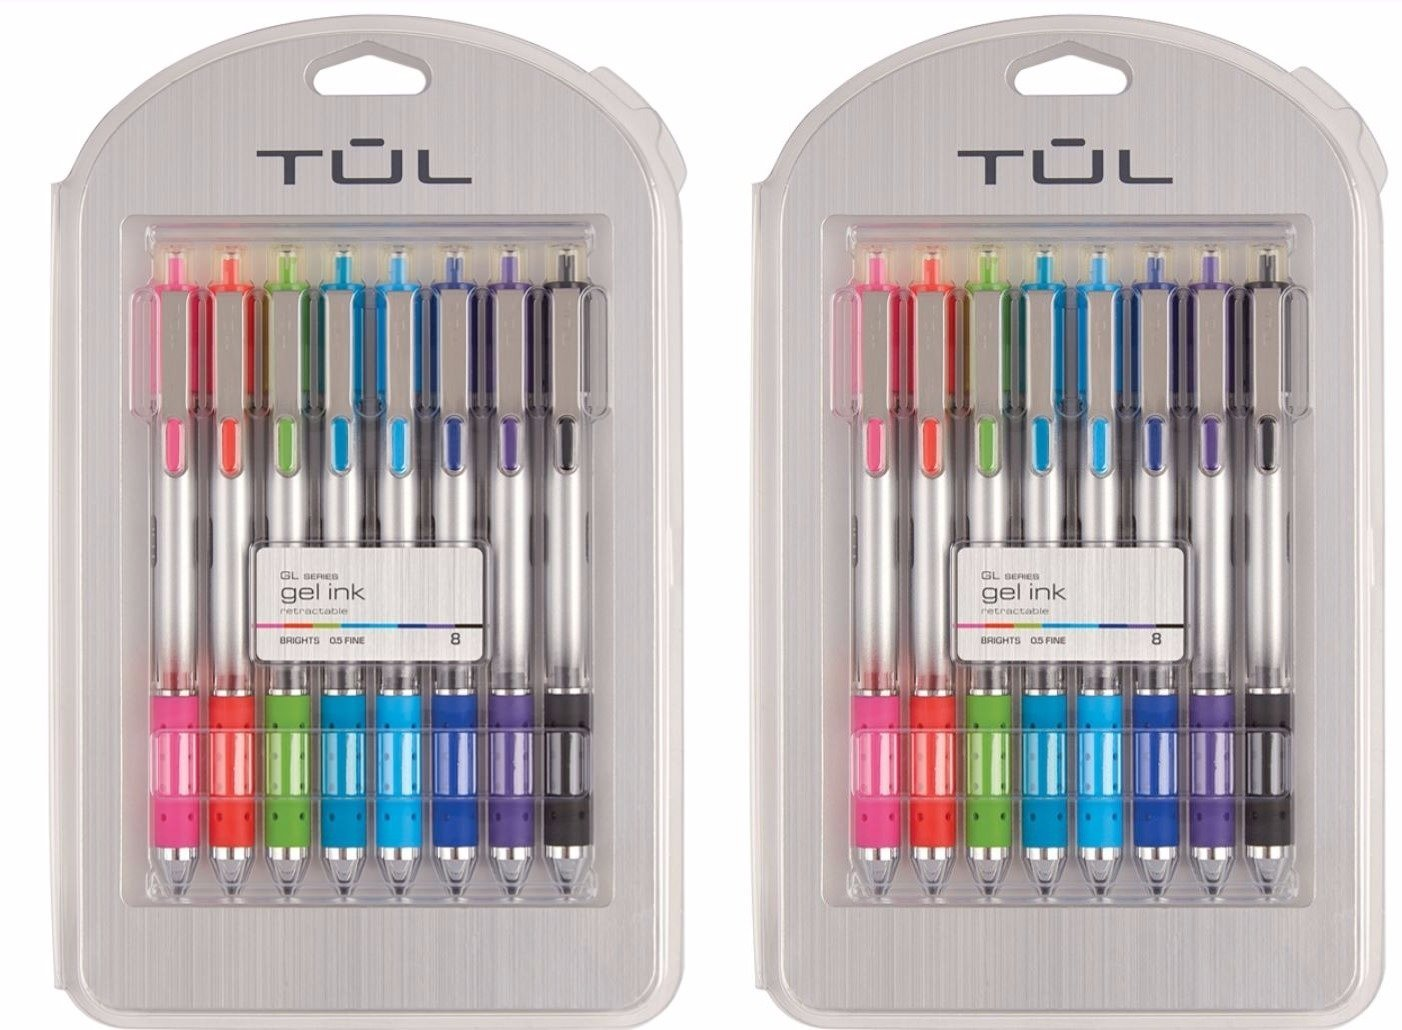 Tul (TM) Retractable Gel Pens, FinePoint, 0.5 mm, Assorted Ink, GL Series (16 Count)